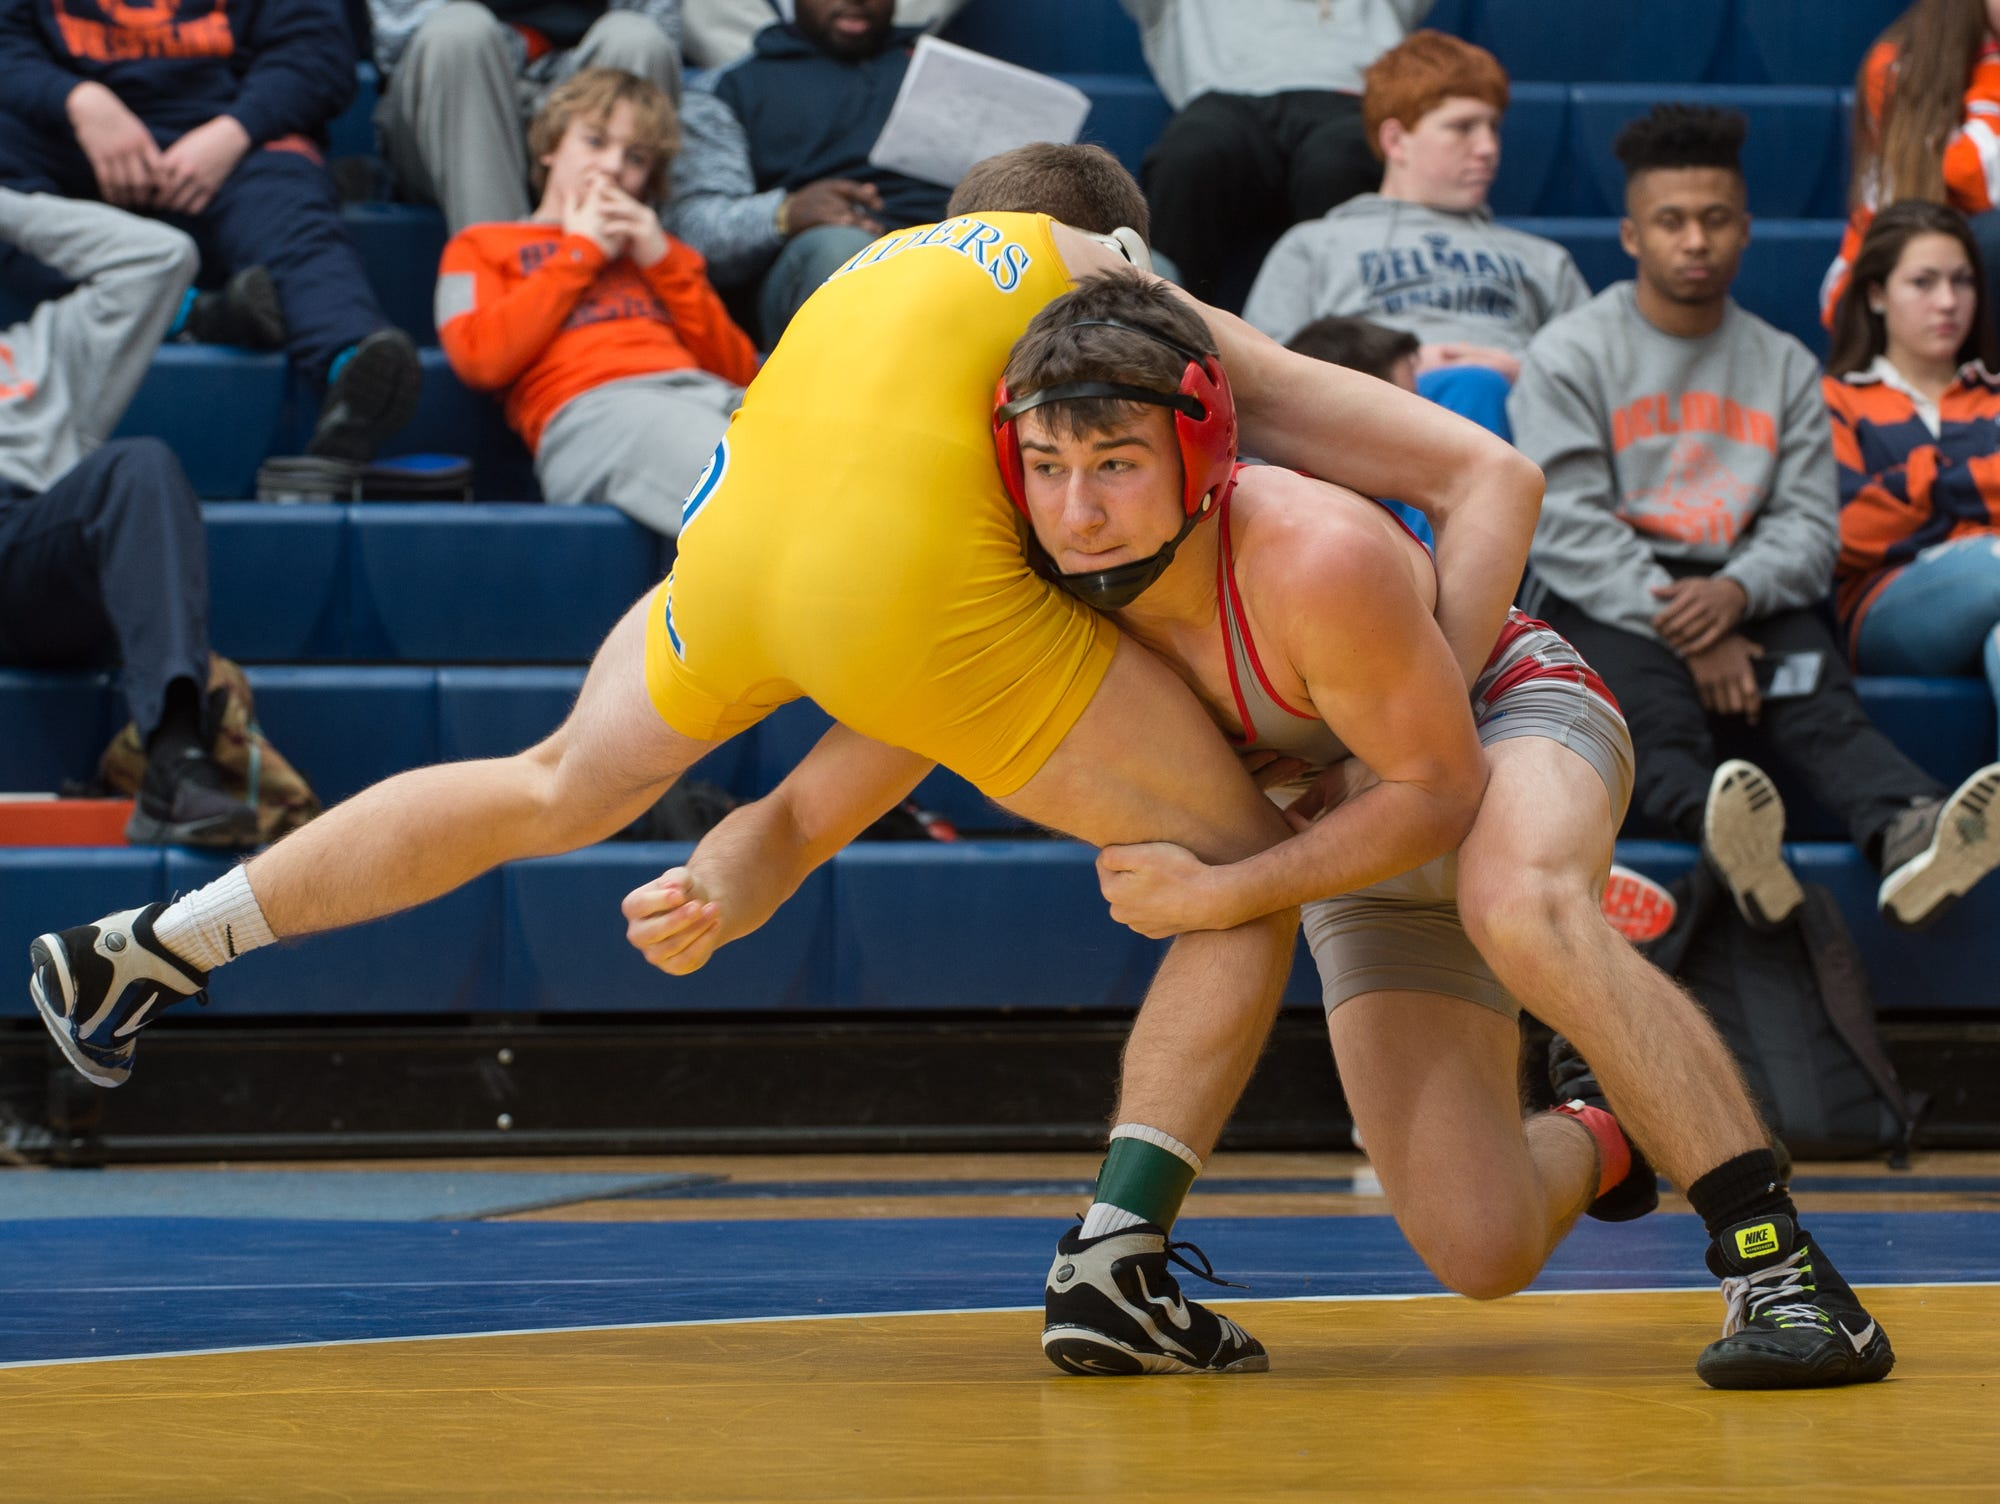 Smyrna's Greg Baum, right, wrestles Caesar Rodney's Jackson Dean in the 132 pound championship match at the Henlopen Conference wrestling tournament at Sussex Central High School.